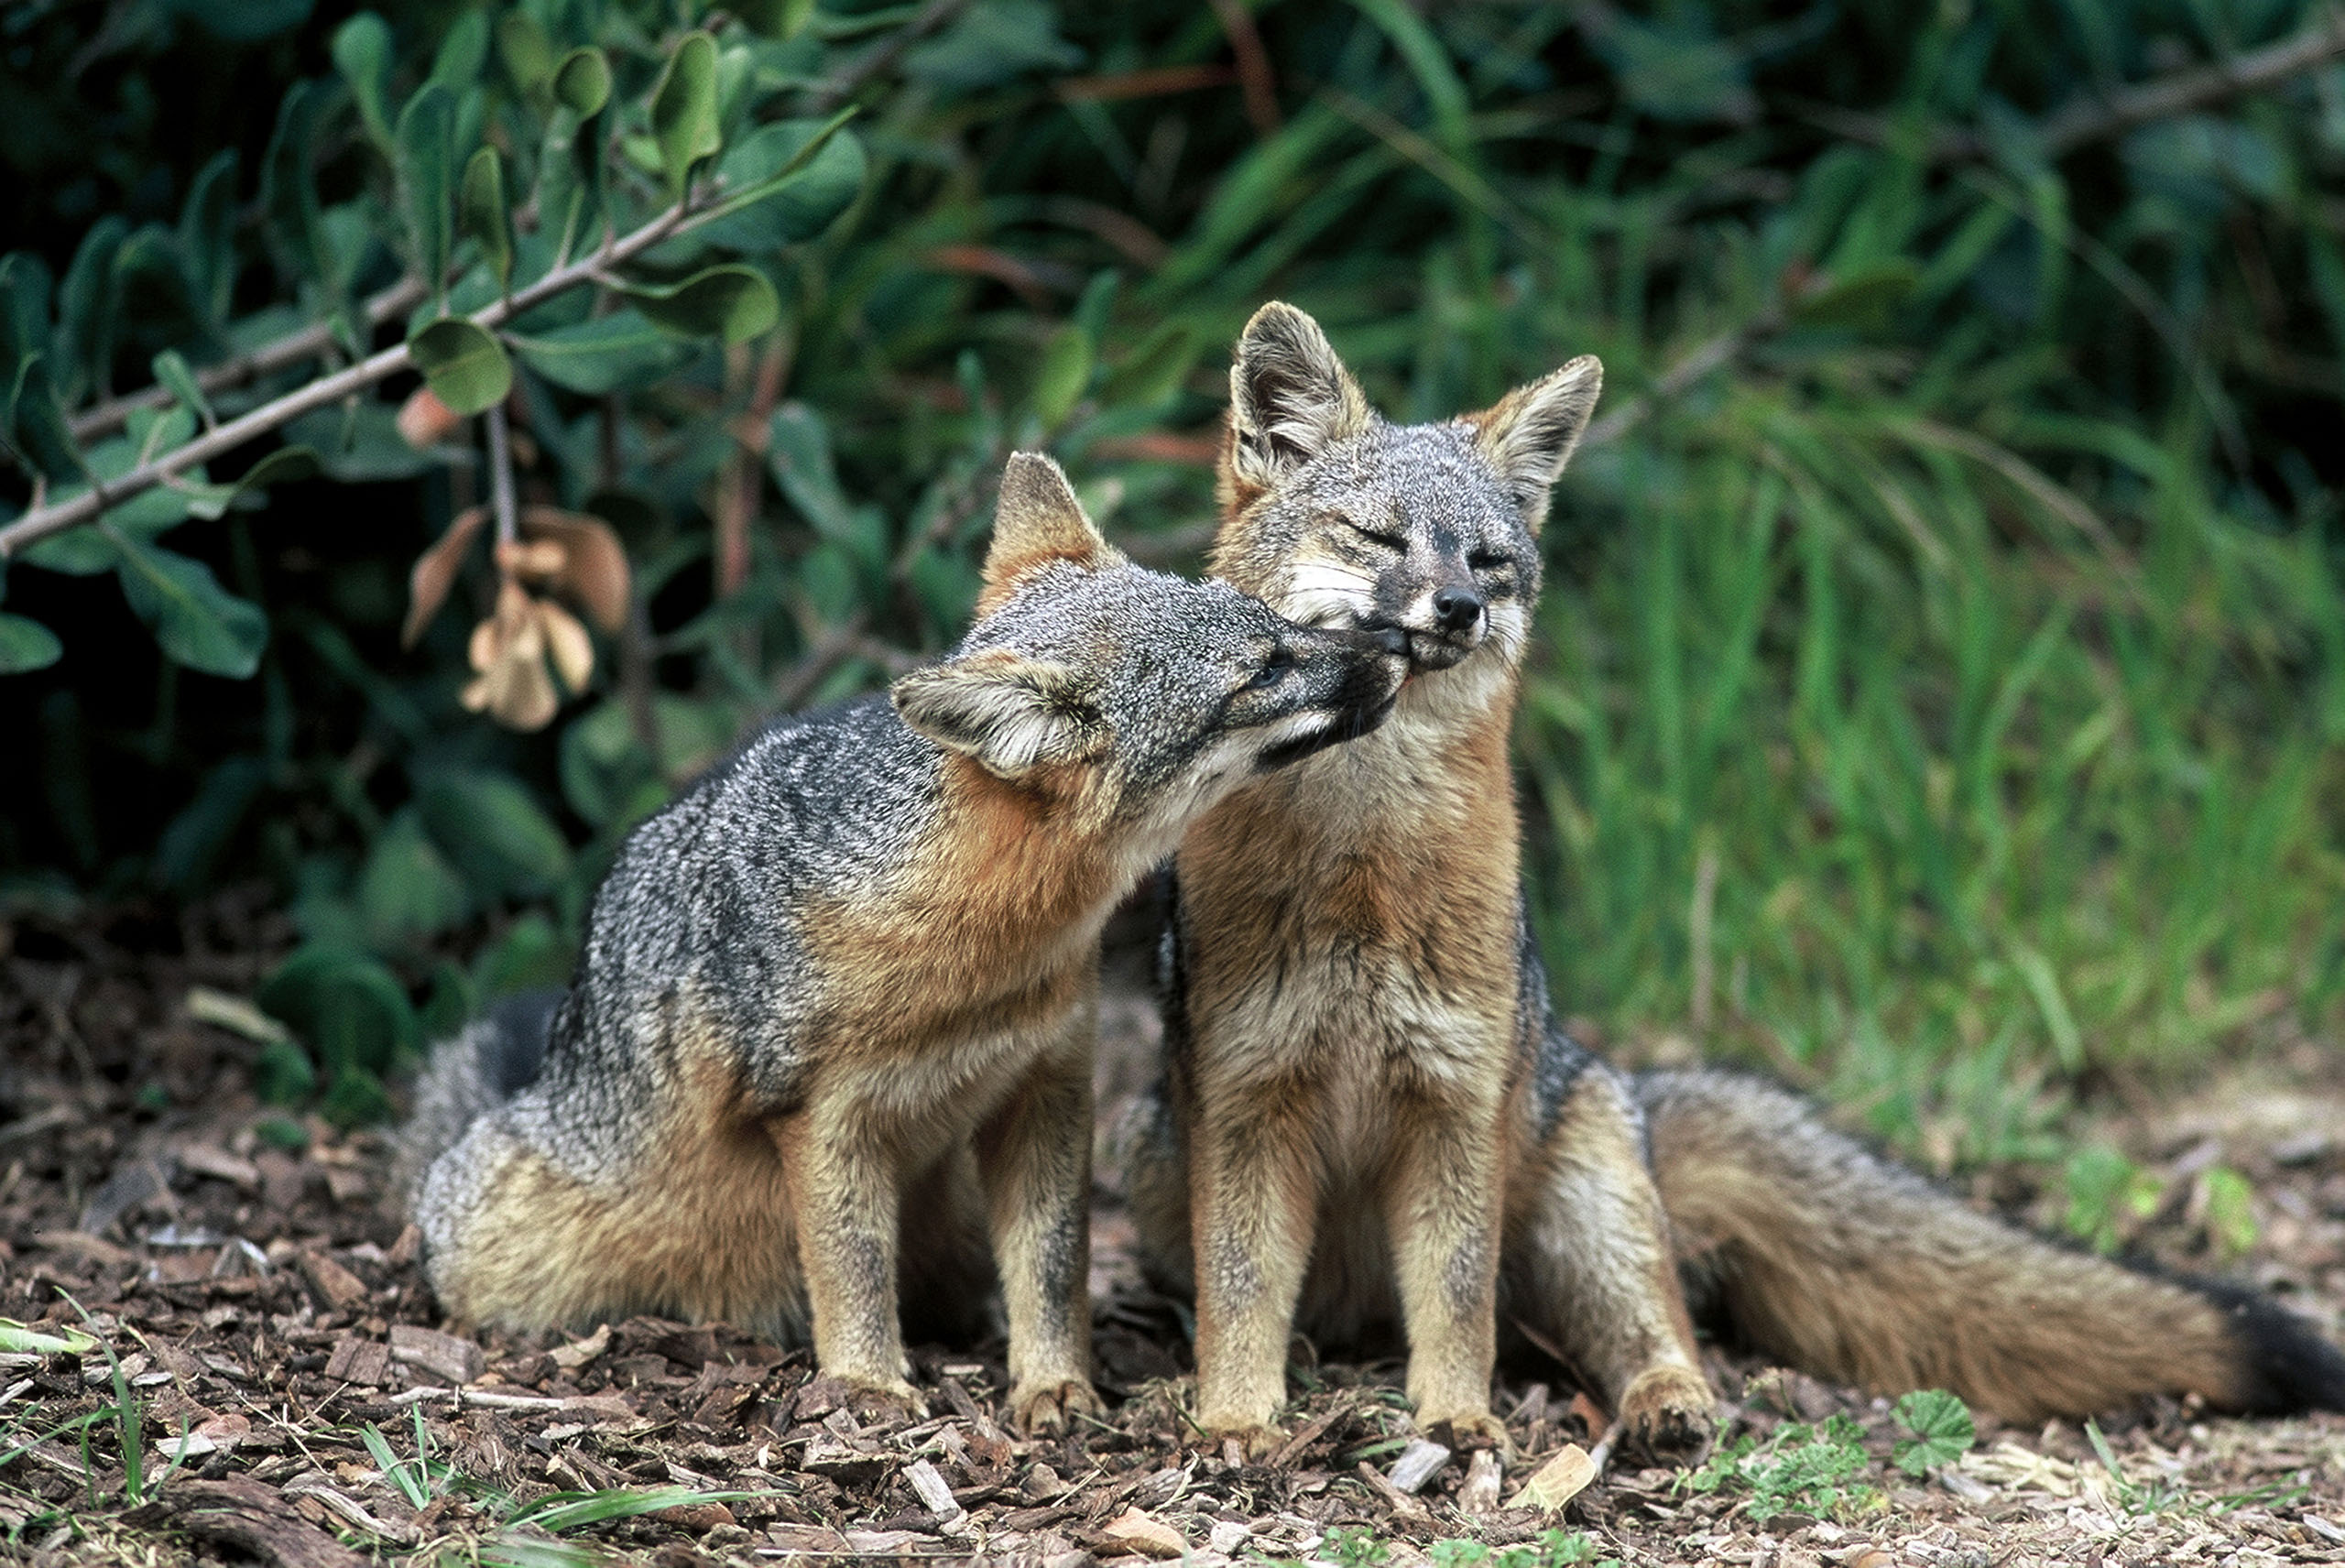 Two island foxes in Channel Islands National Park, Calif. Three fox subspecies native to California's Channel Islands were removed from the list of endangered species, Aug. 11, 2016.